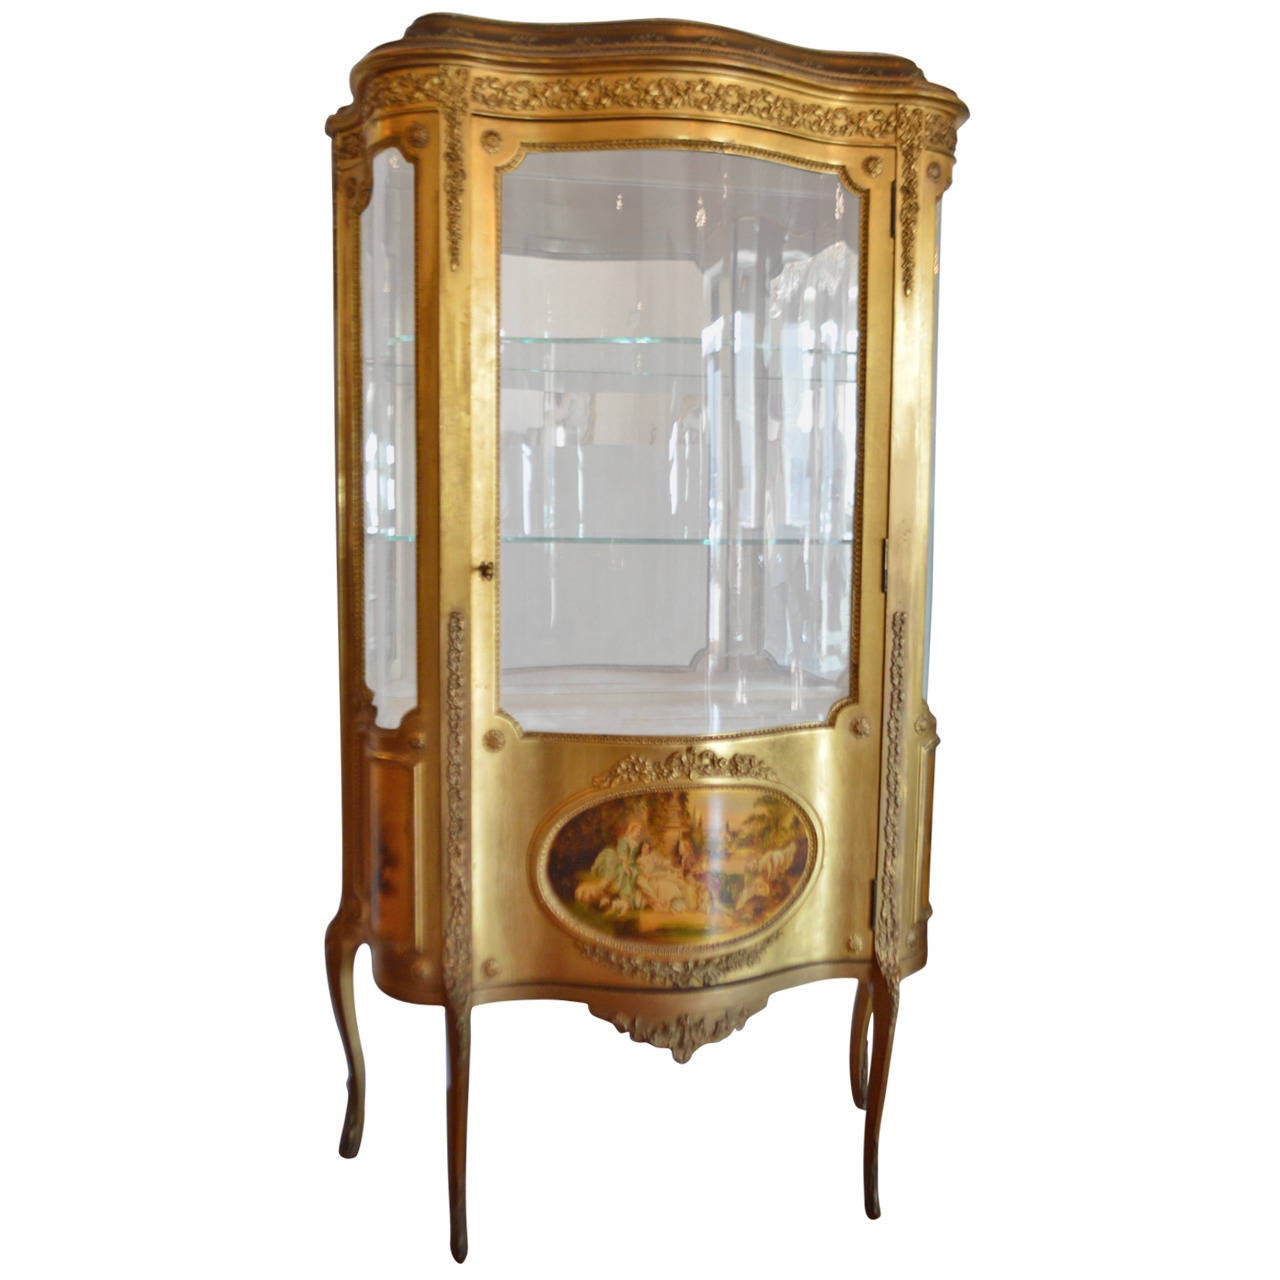 19th century louis xv style gilt vitrine with vernis martin paintings at 1stdibs. Black Bedroom Furniture Sets. Home Design Ideas